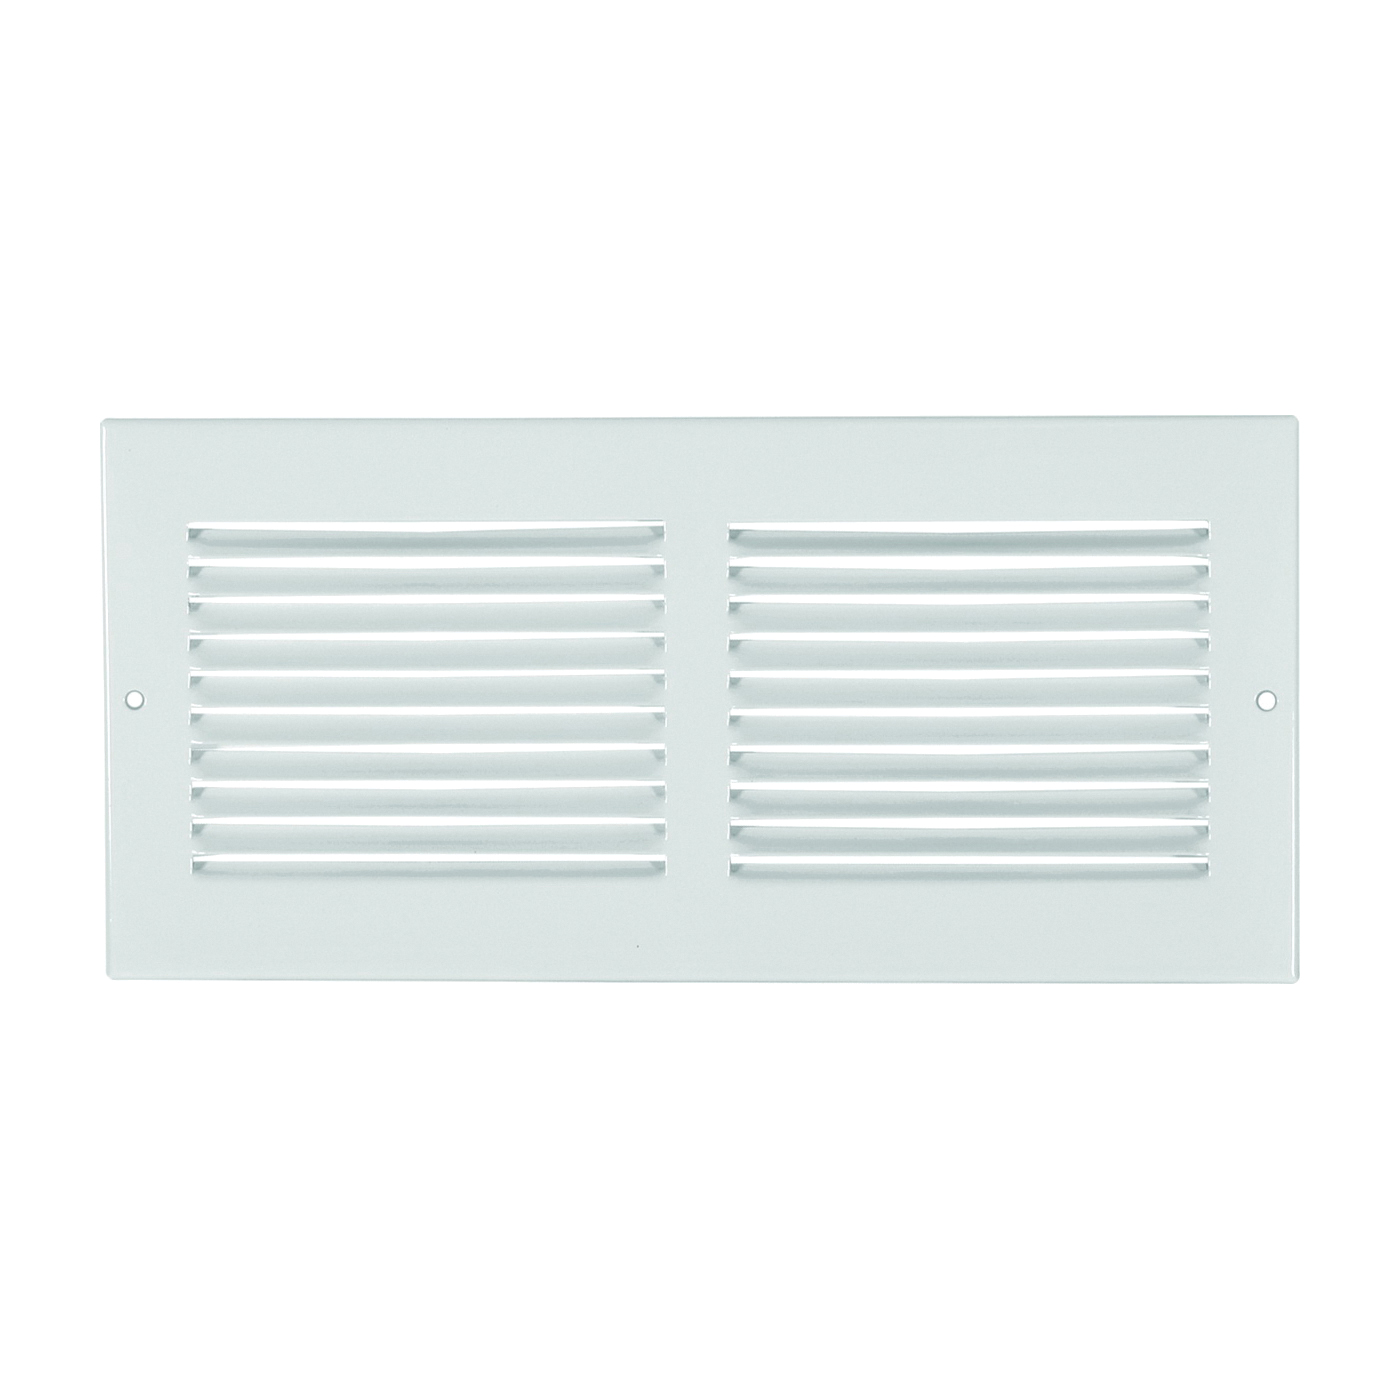 Picture of Imperial RG0385 Sidewall Grille, 13-1/4 in L, 7-1/4 in W, Steel, White